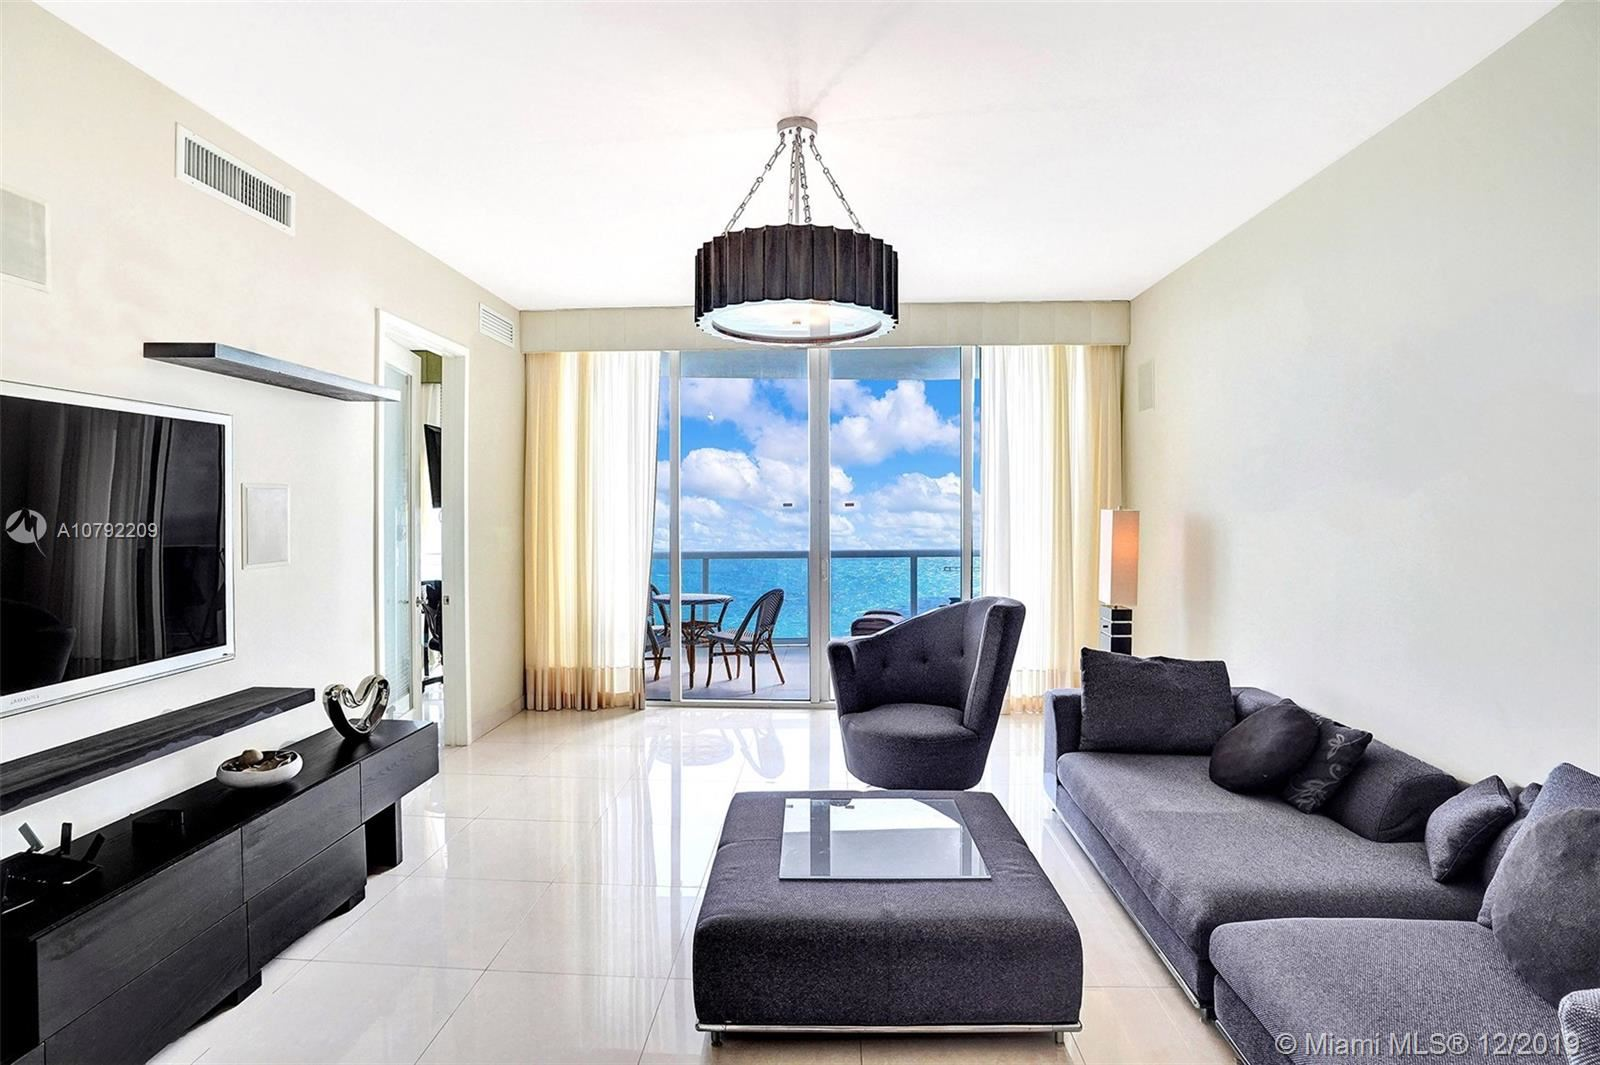 18101 Collins Ave #4904, Sunny Isles, FL 33160 - #: A10792209